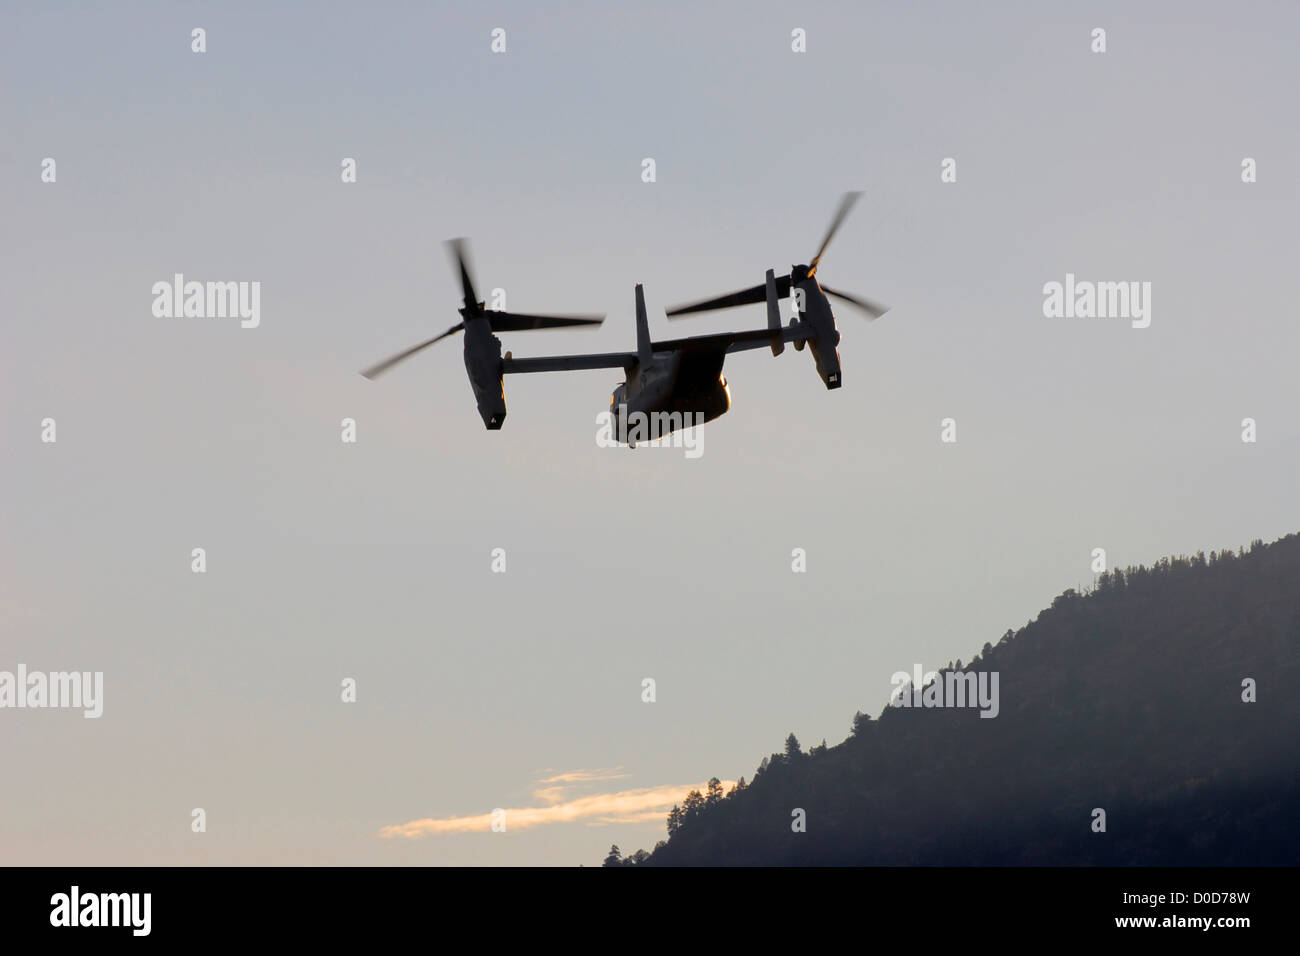 The V-22 Rotates its Nacelles From Helicopter Mode to Airplane Mode After Launching - Stock Image